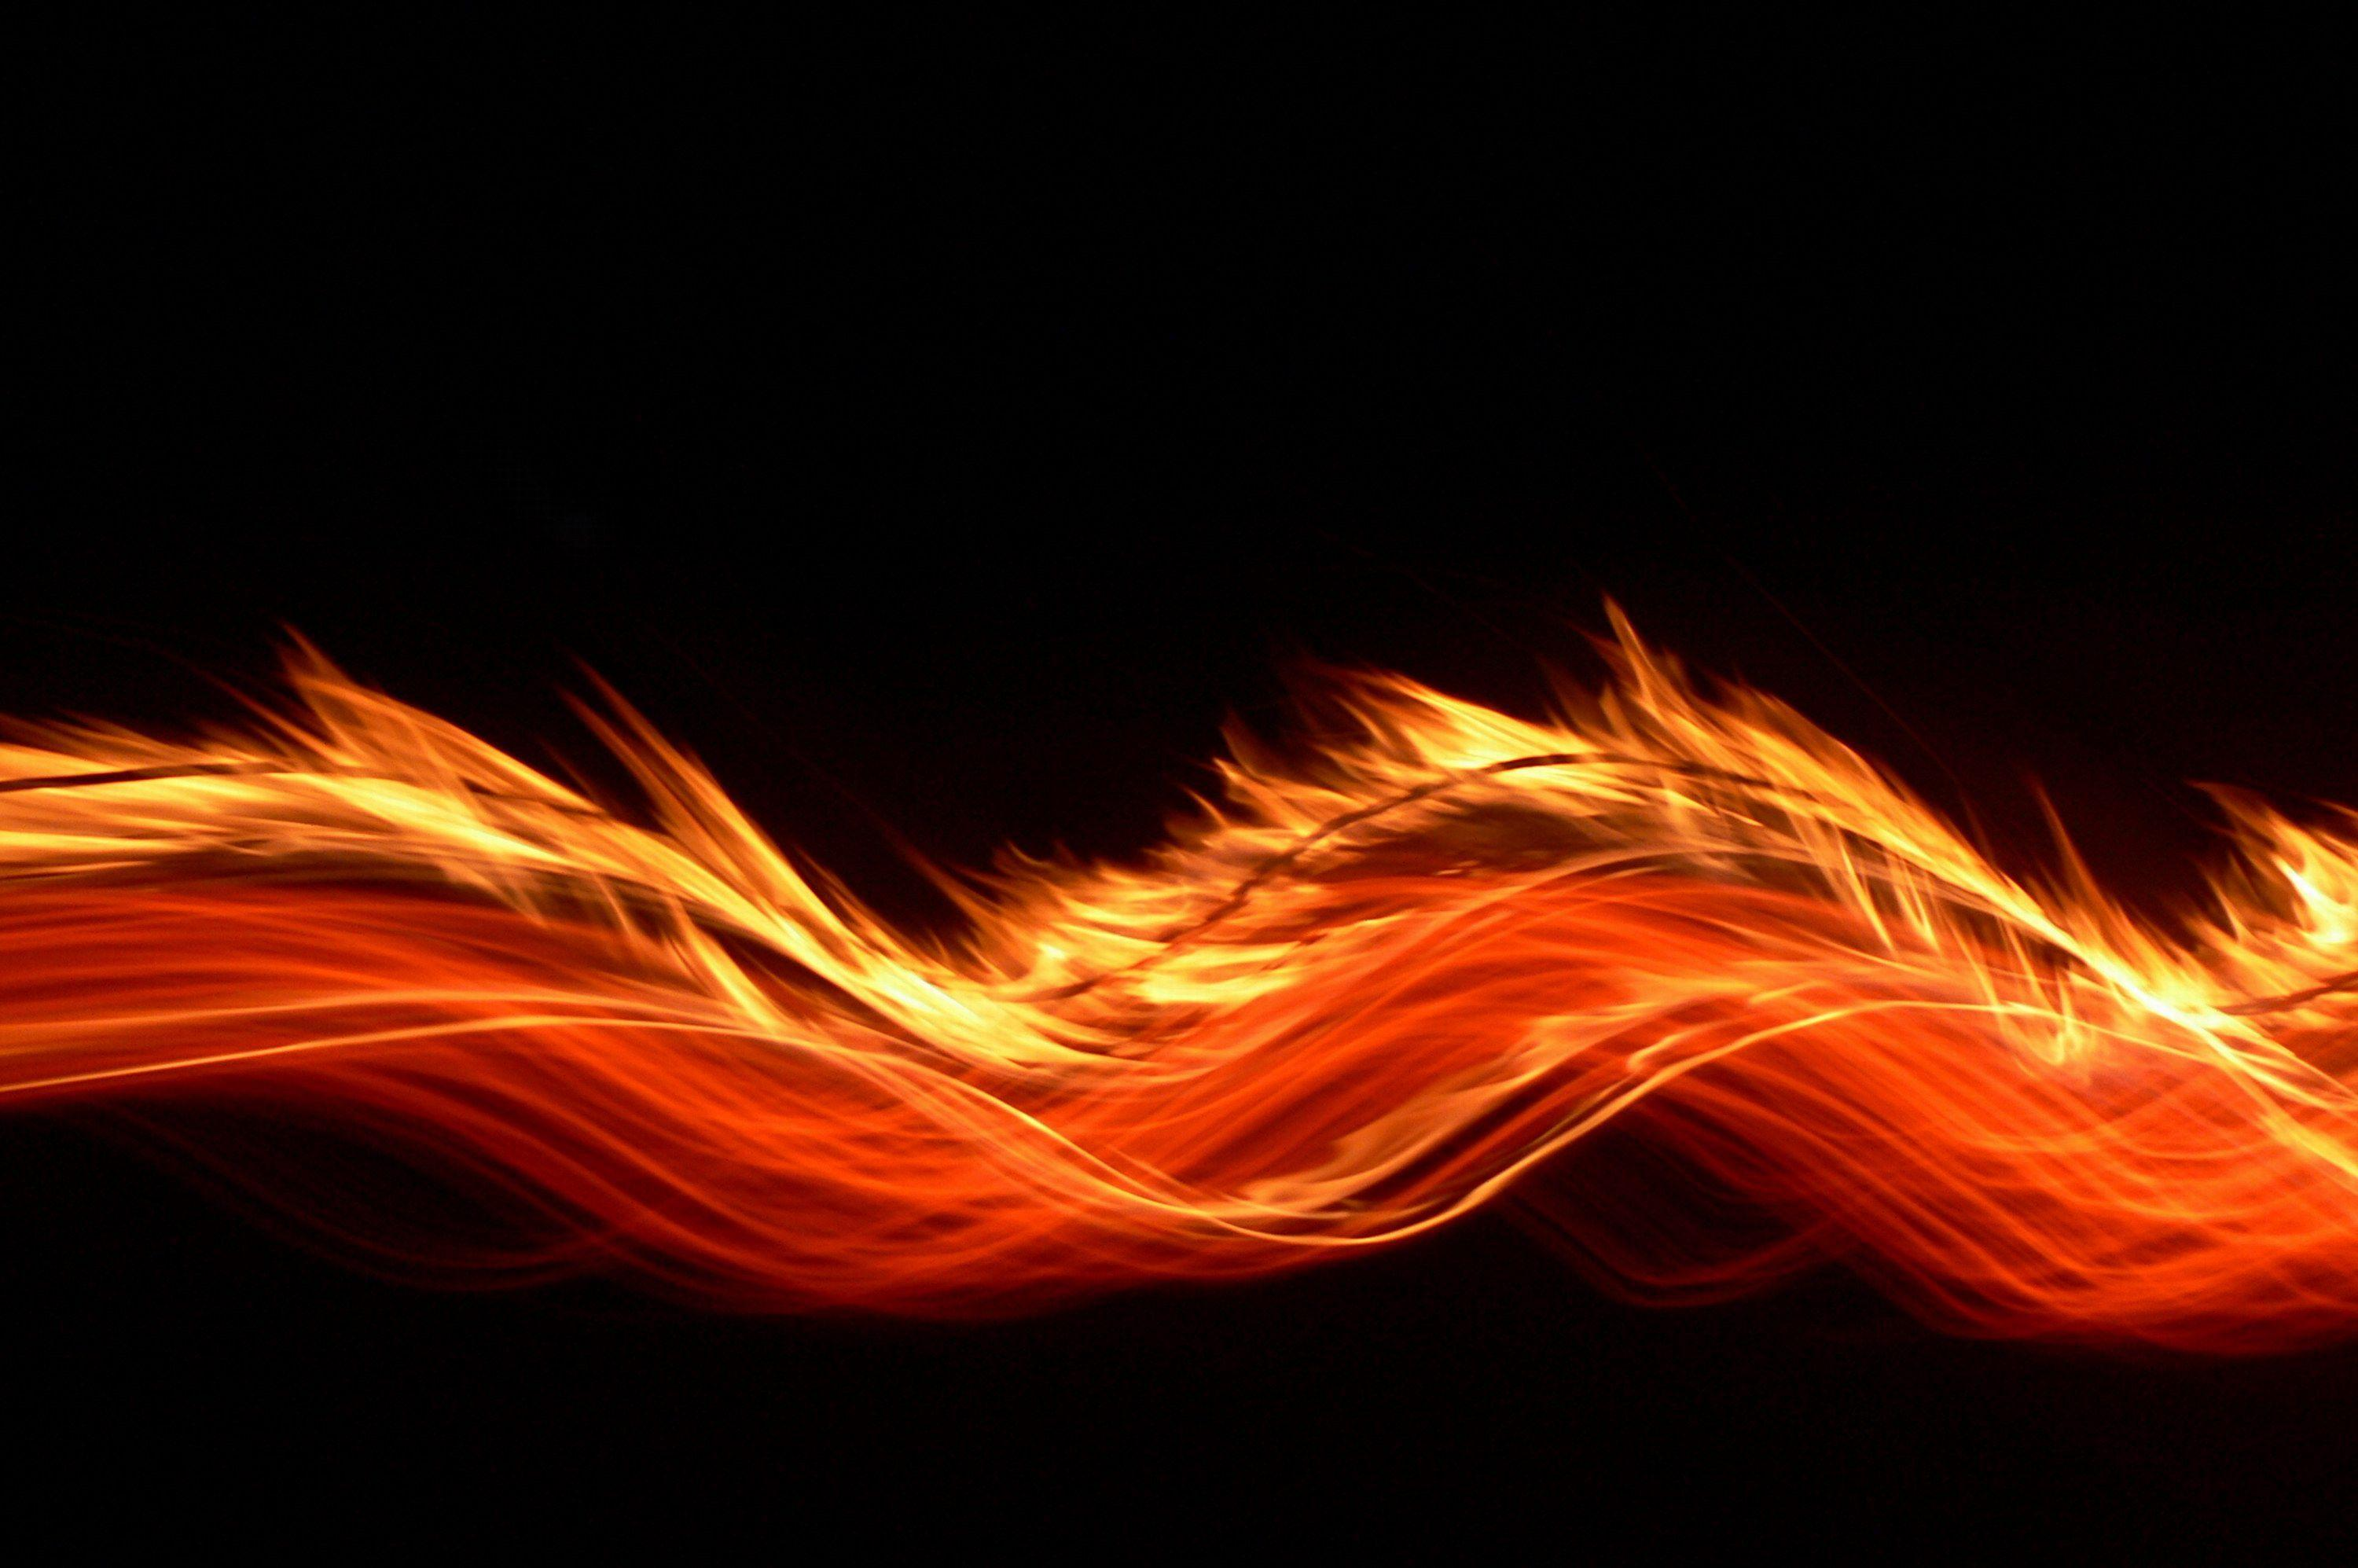 Abstract Fire Wallpaper 4 3373 Images HD Wallpapers